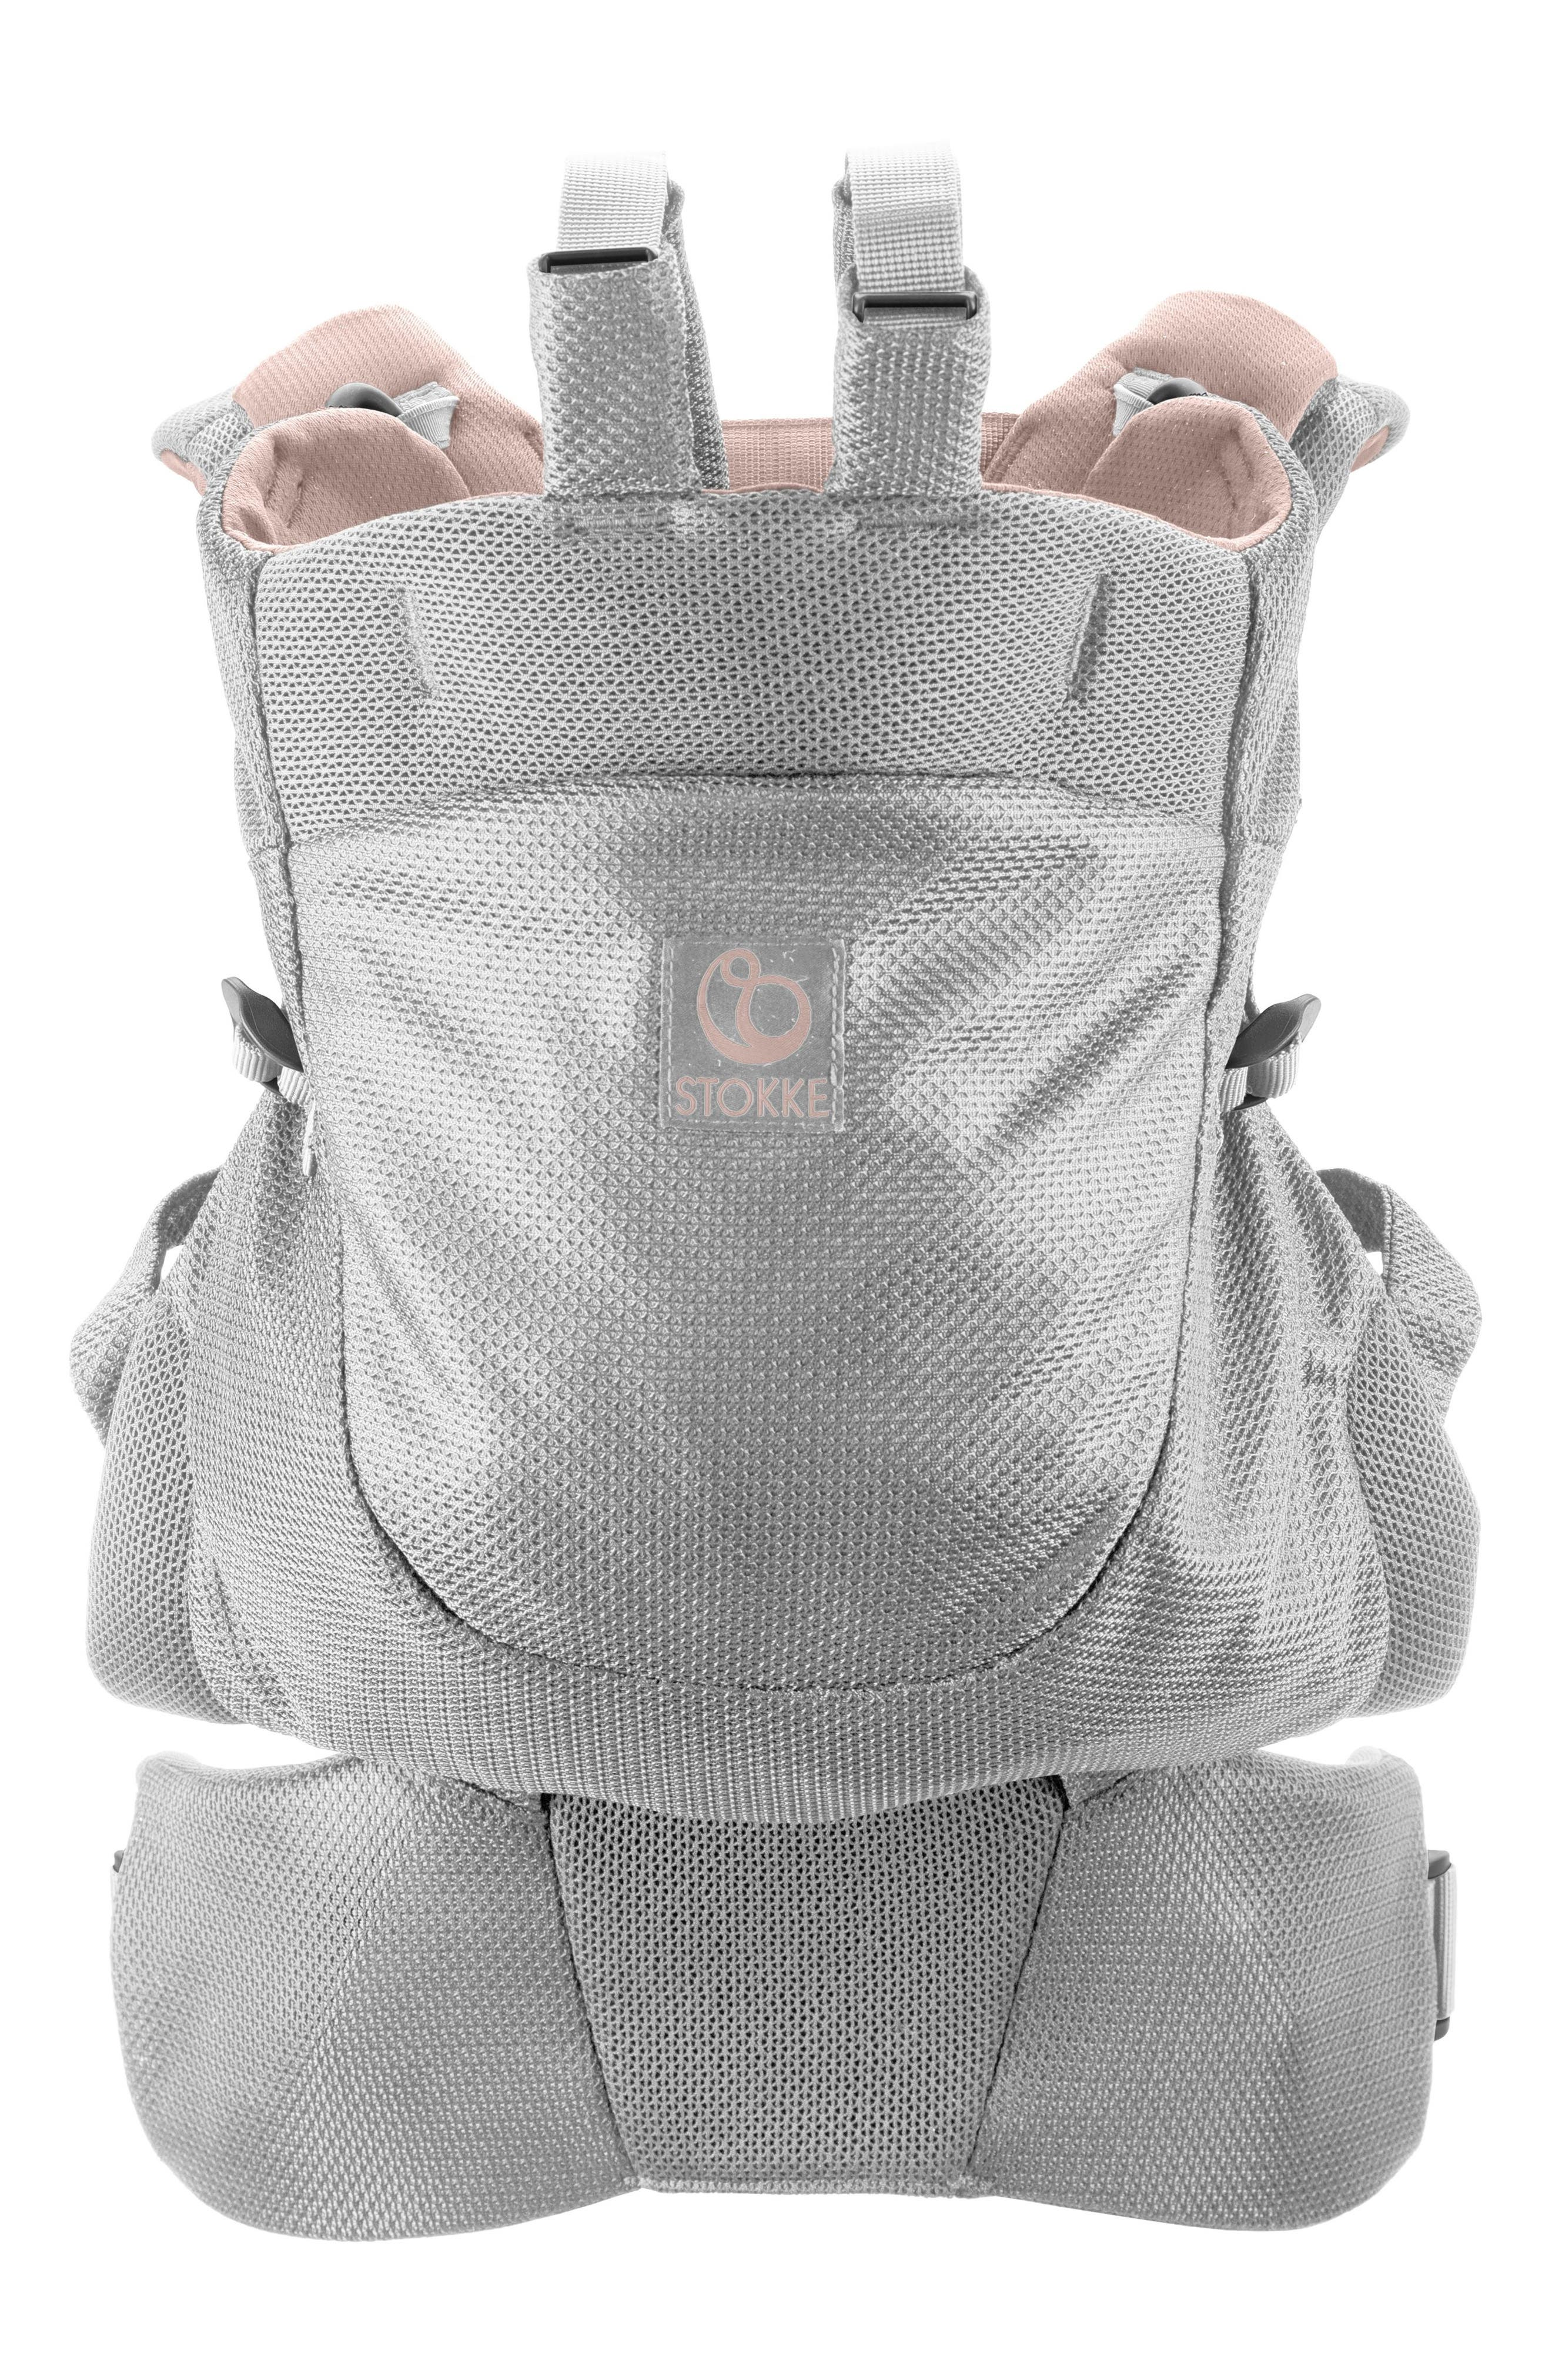 Infant Stokke Mycarrier(TM) Front Baby Carrier Size One Size  Pink